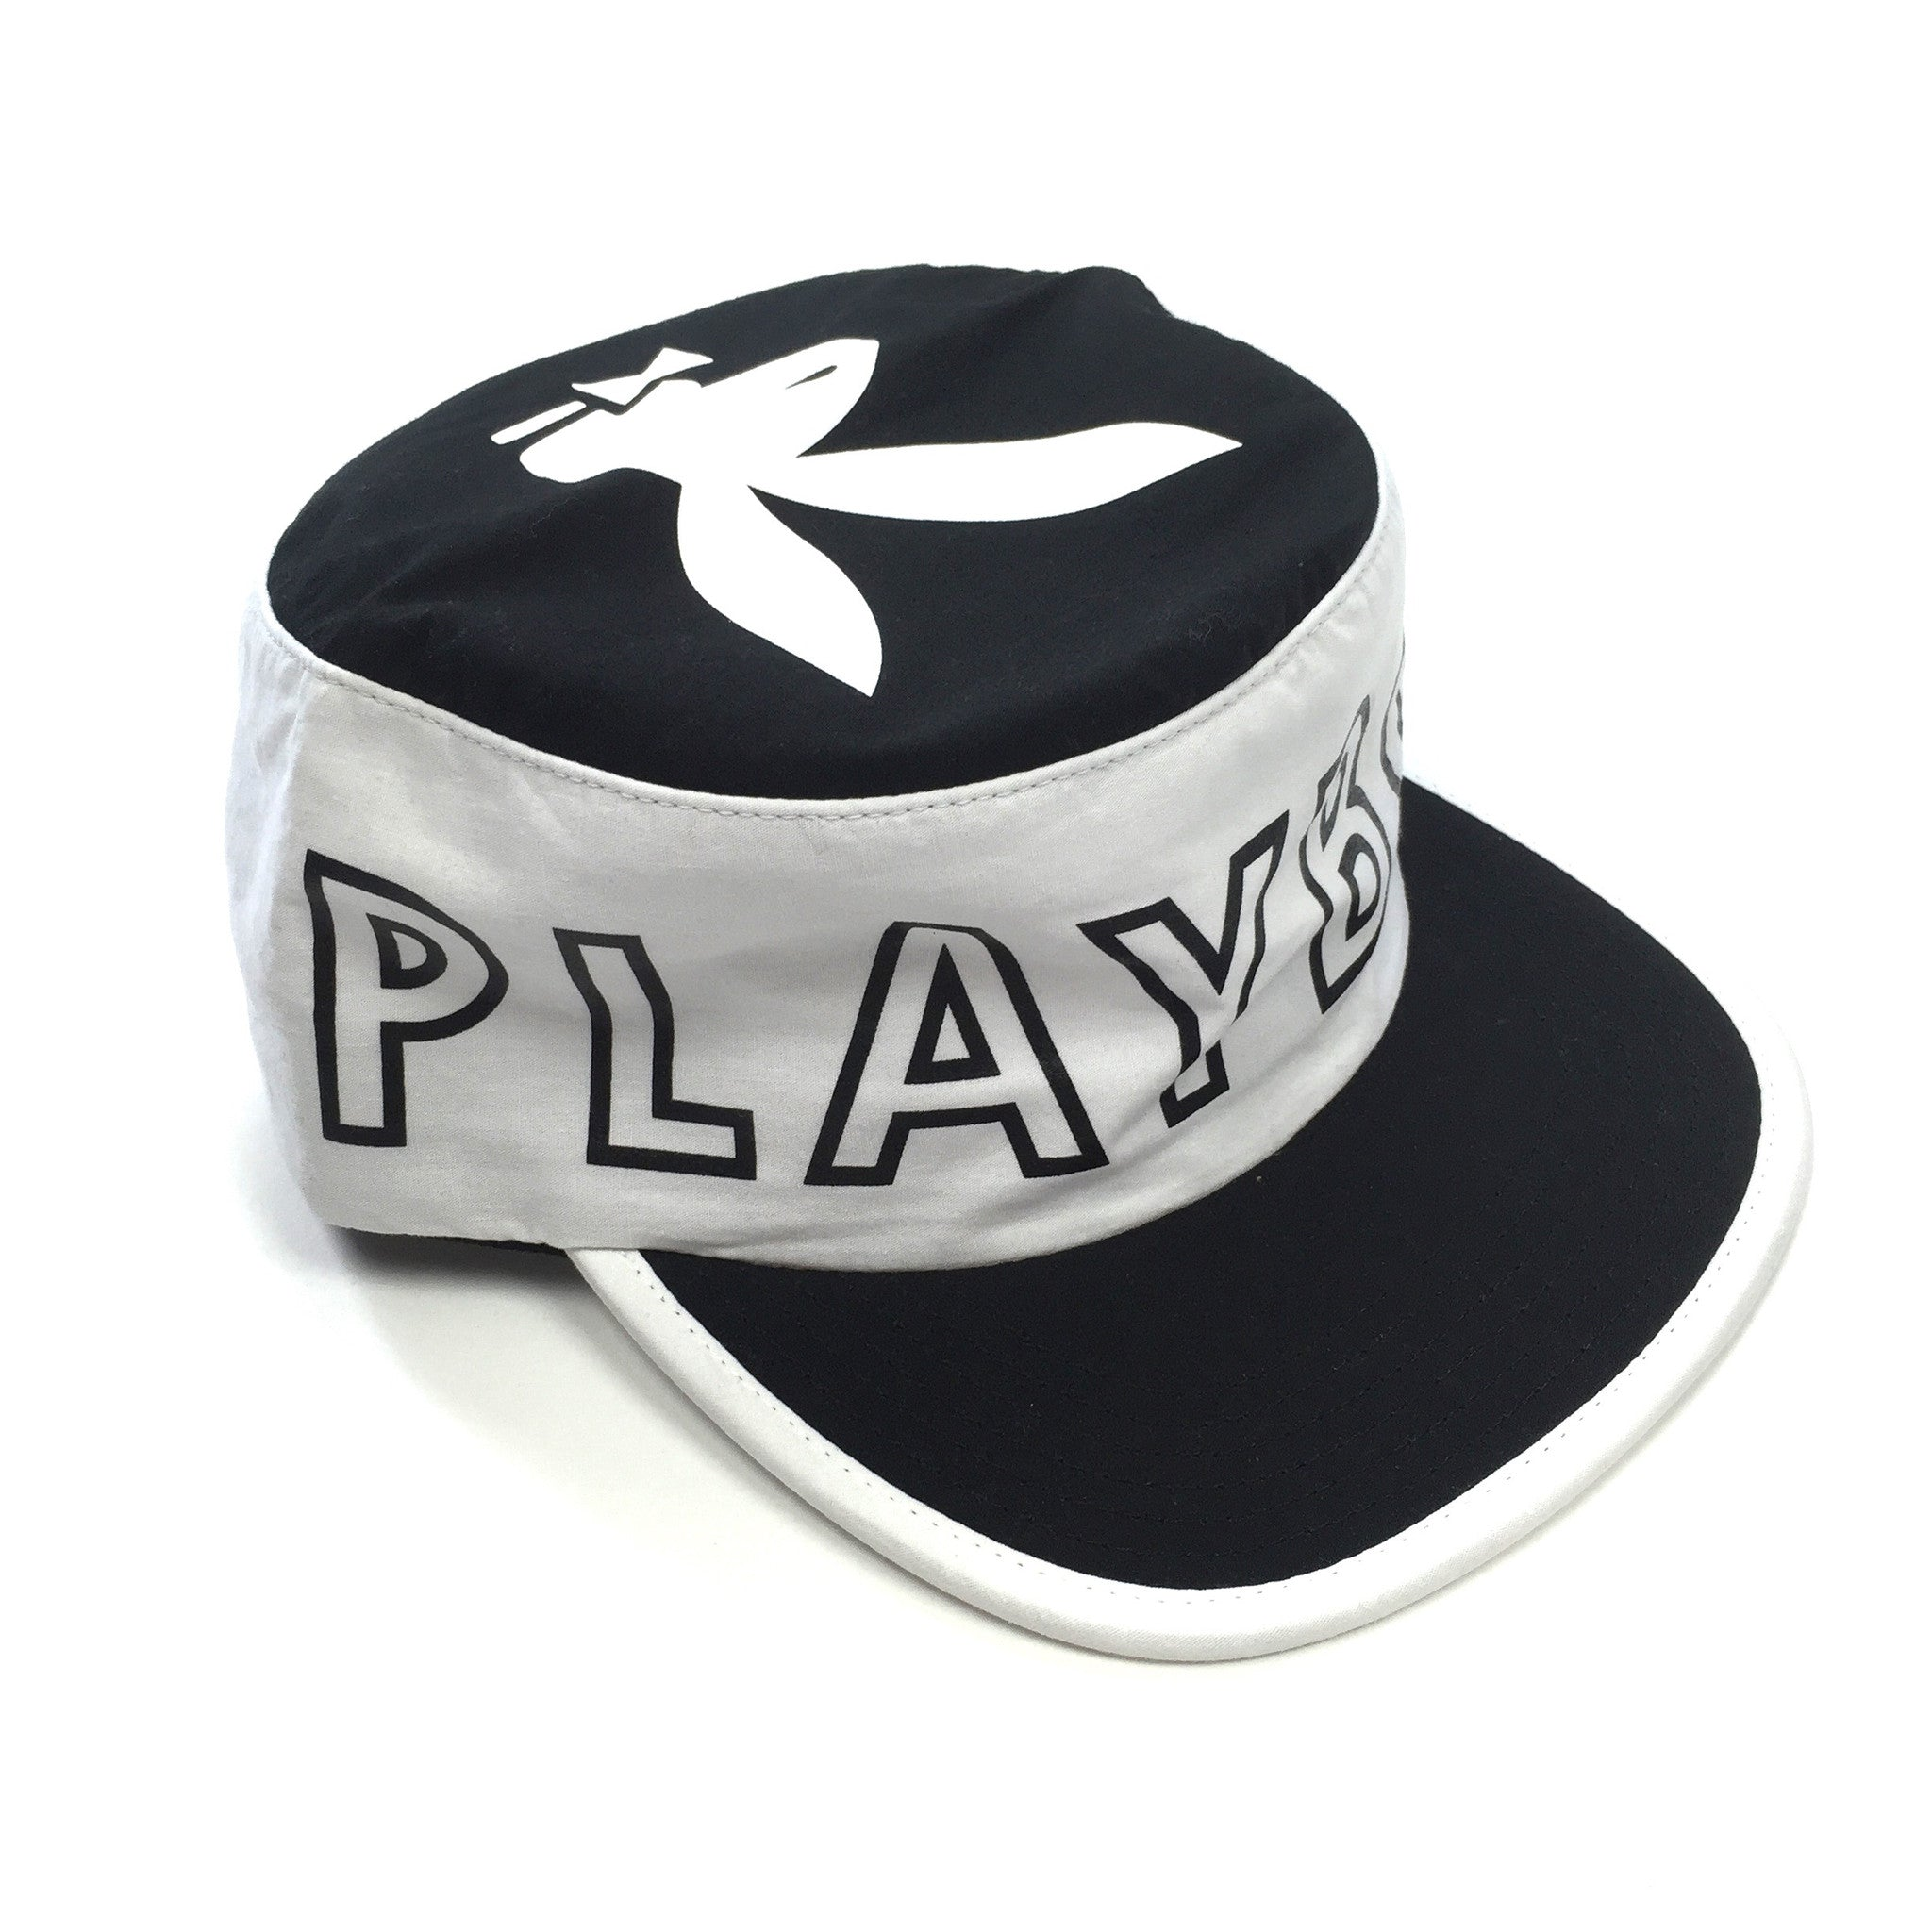 Supreme x Playboy - Black & White Pillbox Hat